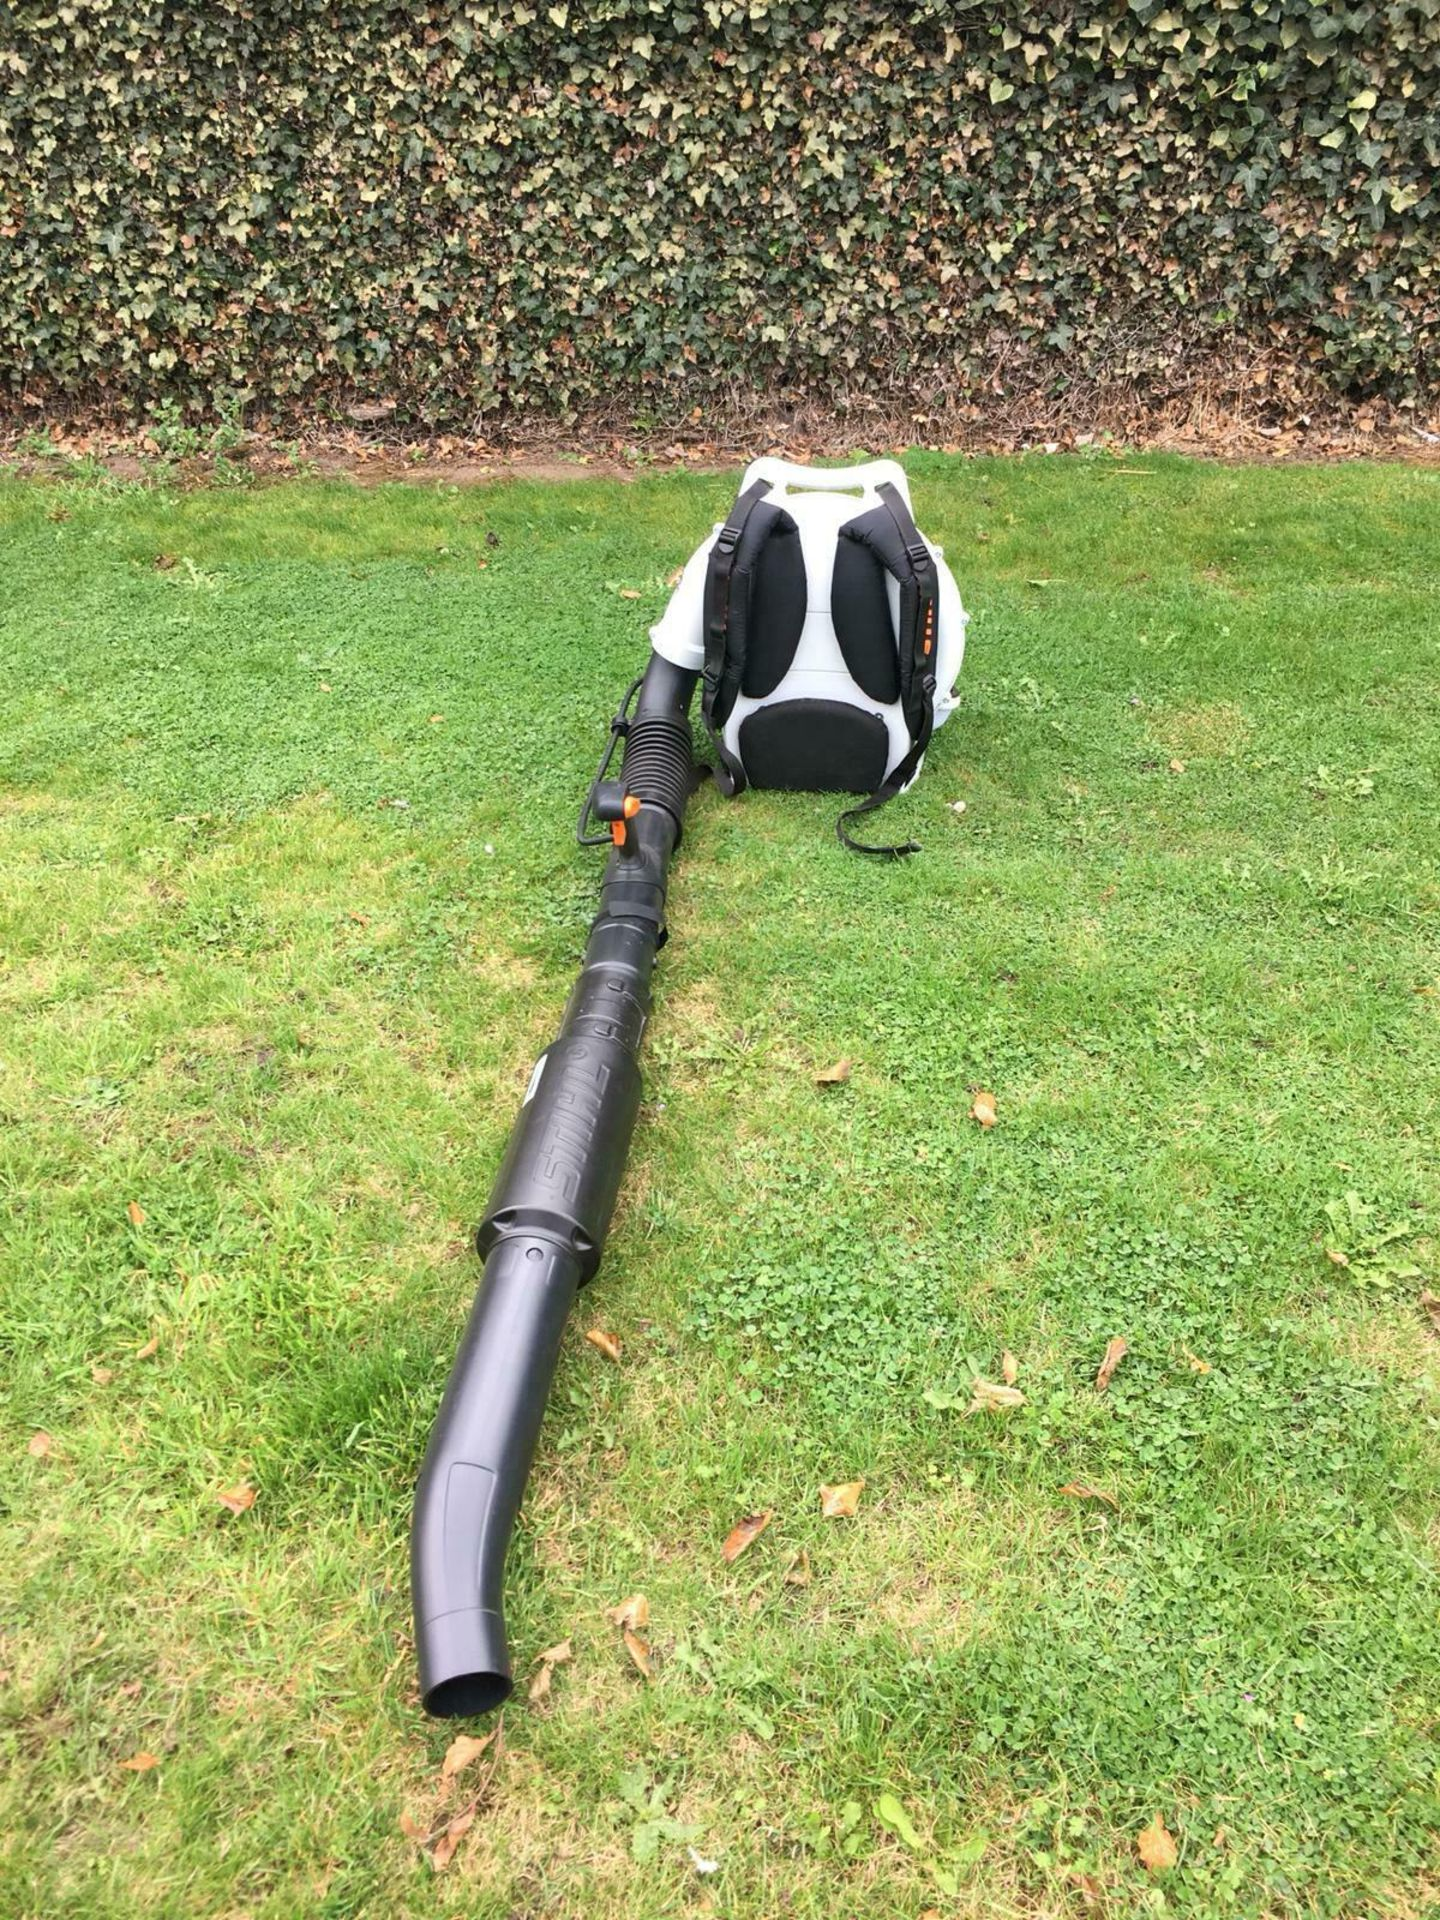 STIHL BACK PACK LEAF BLOWER, MODEL: BR500, MANUFACTURED 07/2017, NEVER USED, CHOICE OF 2 *PLUS VAT* - Image 7 of 7